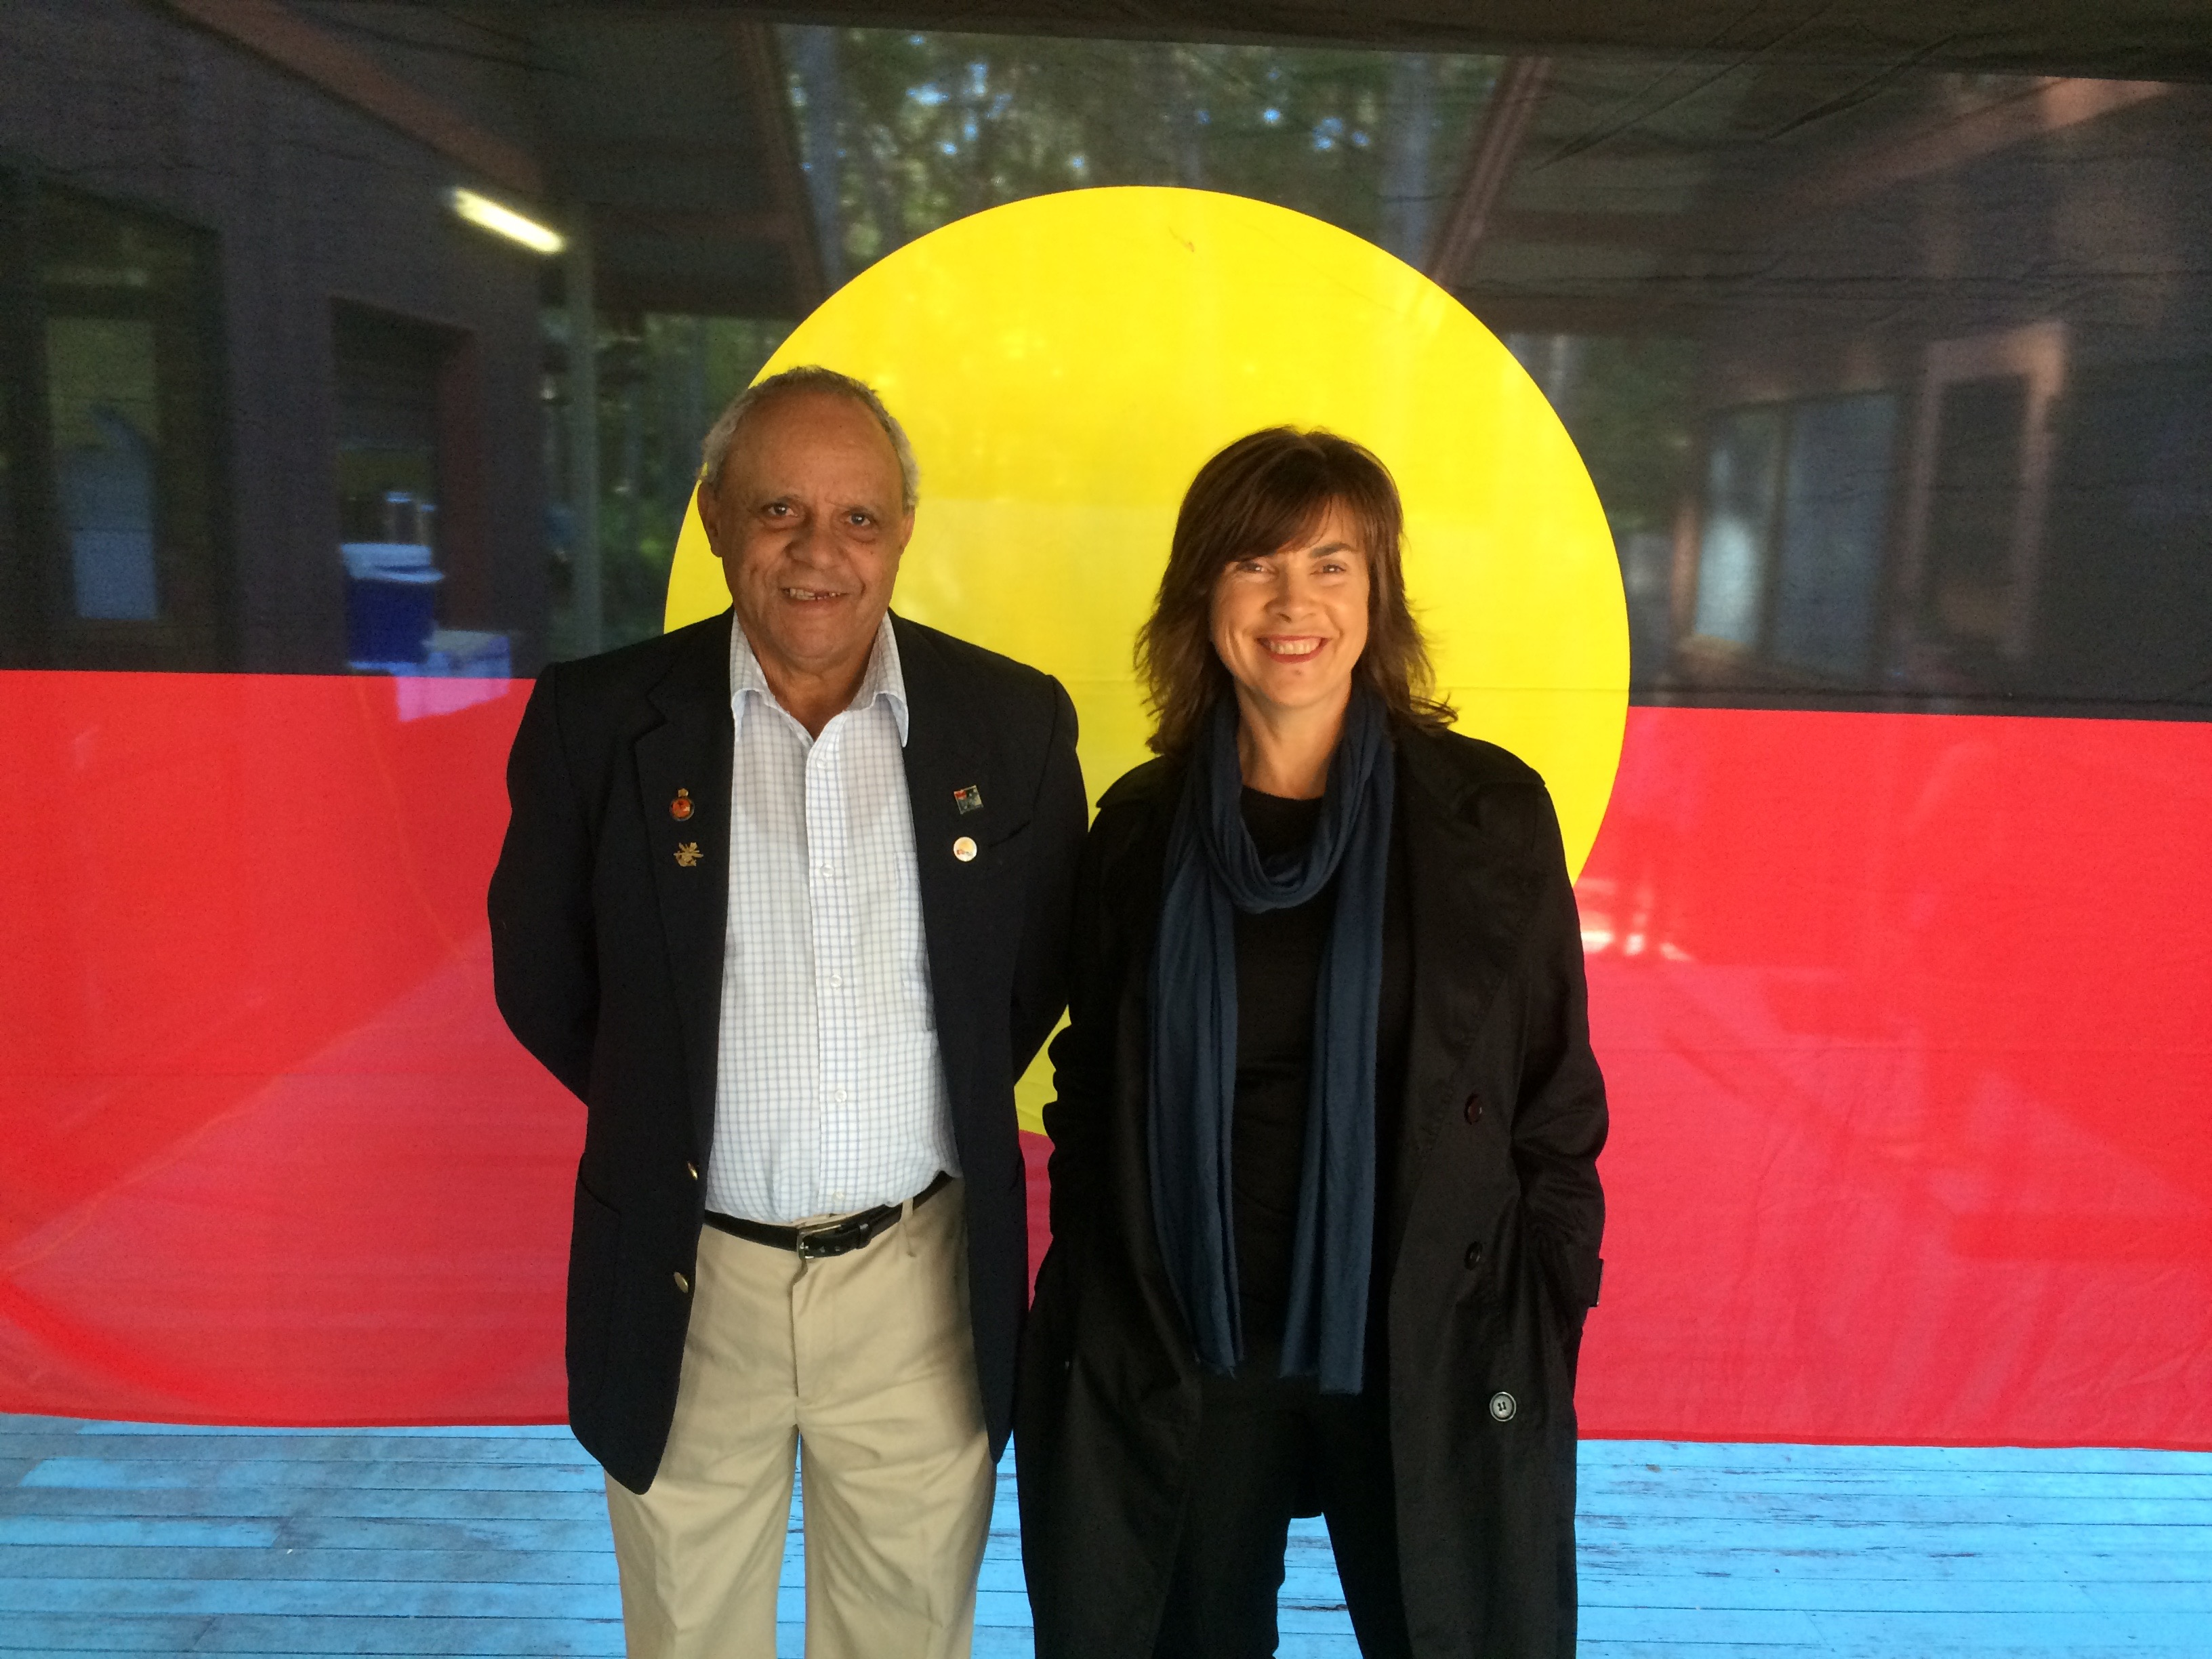 Greens support Local Councils to Change the Date of Australia Day activities - Dawn Walker MP